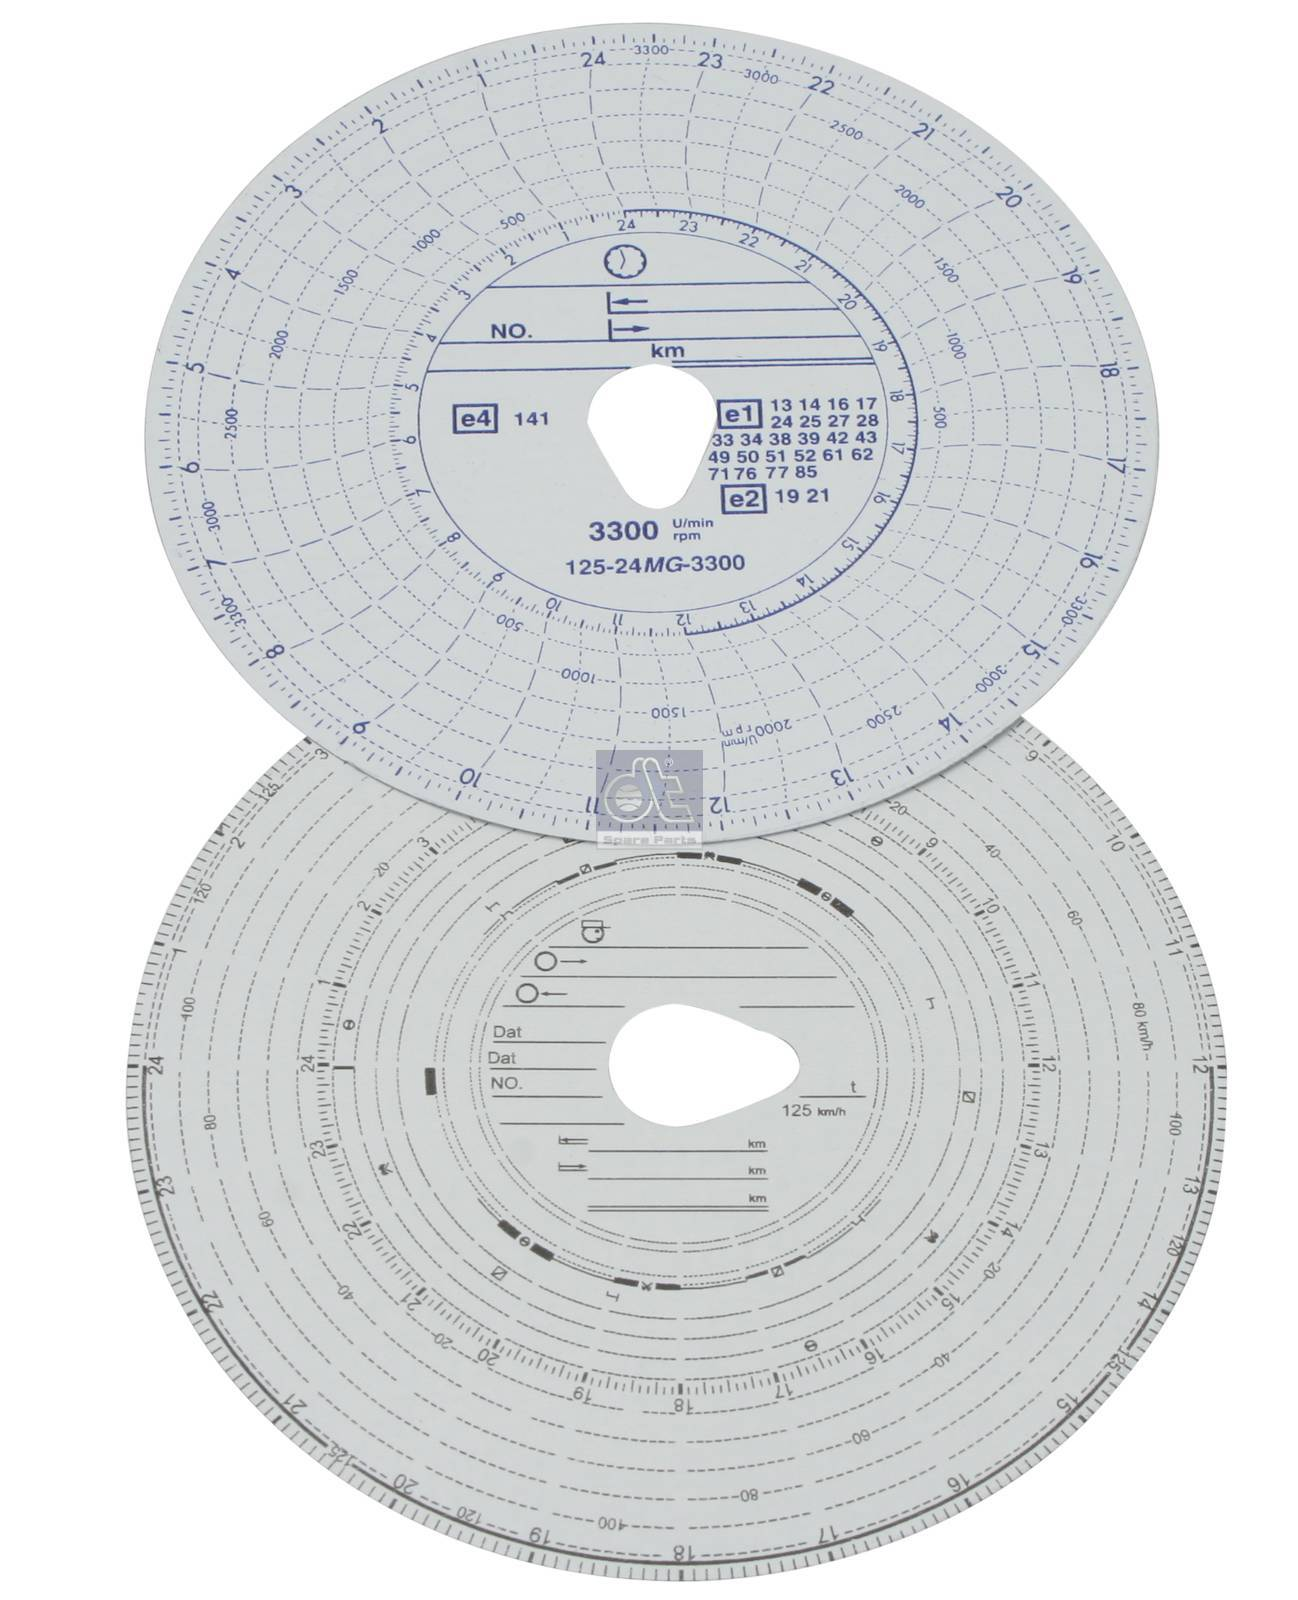 Tachograph disc set, 1 day with rpm